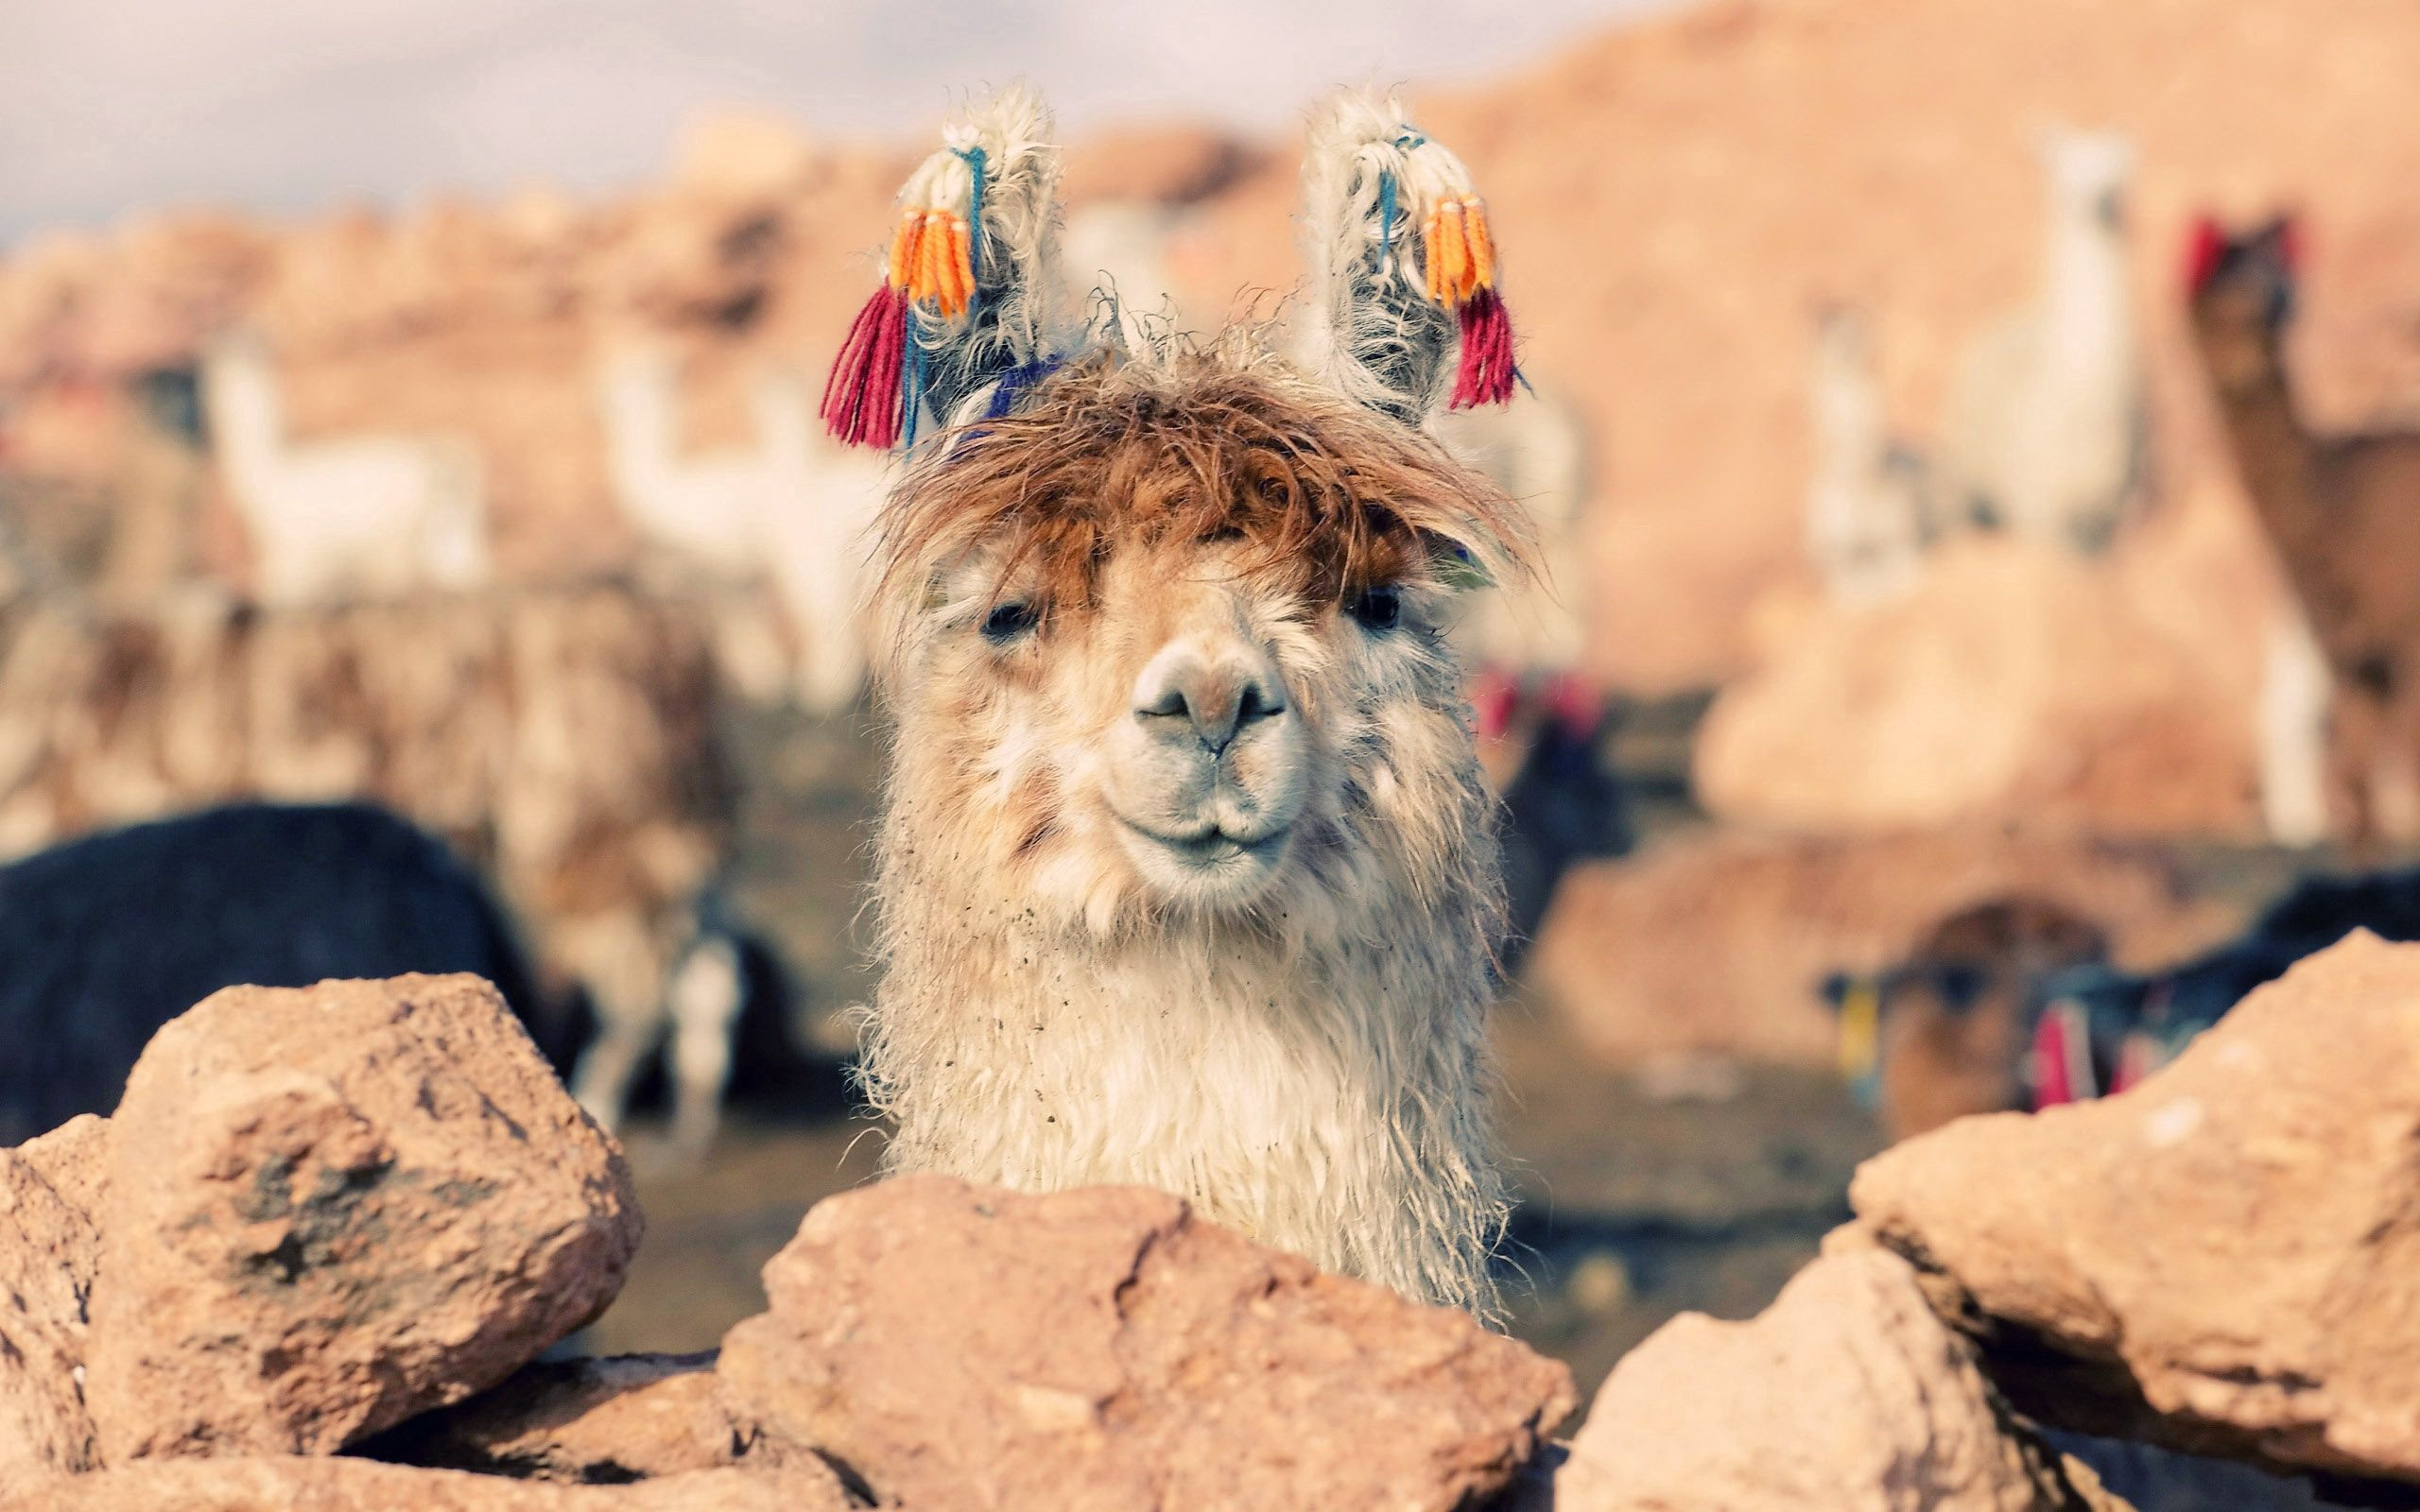 141858 Screensavers and Wallpapers Nose for phone. Download Animals, Stones, Muzzle, Nose, Llama, Lama pictures for free